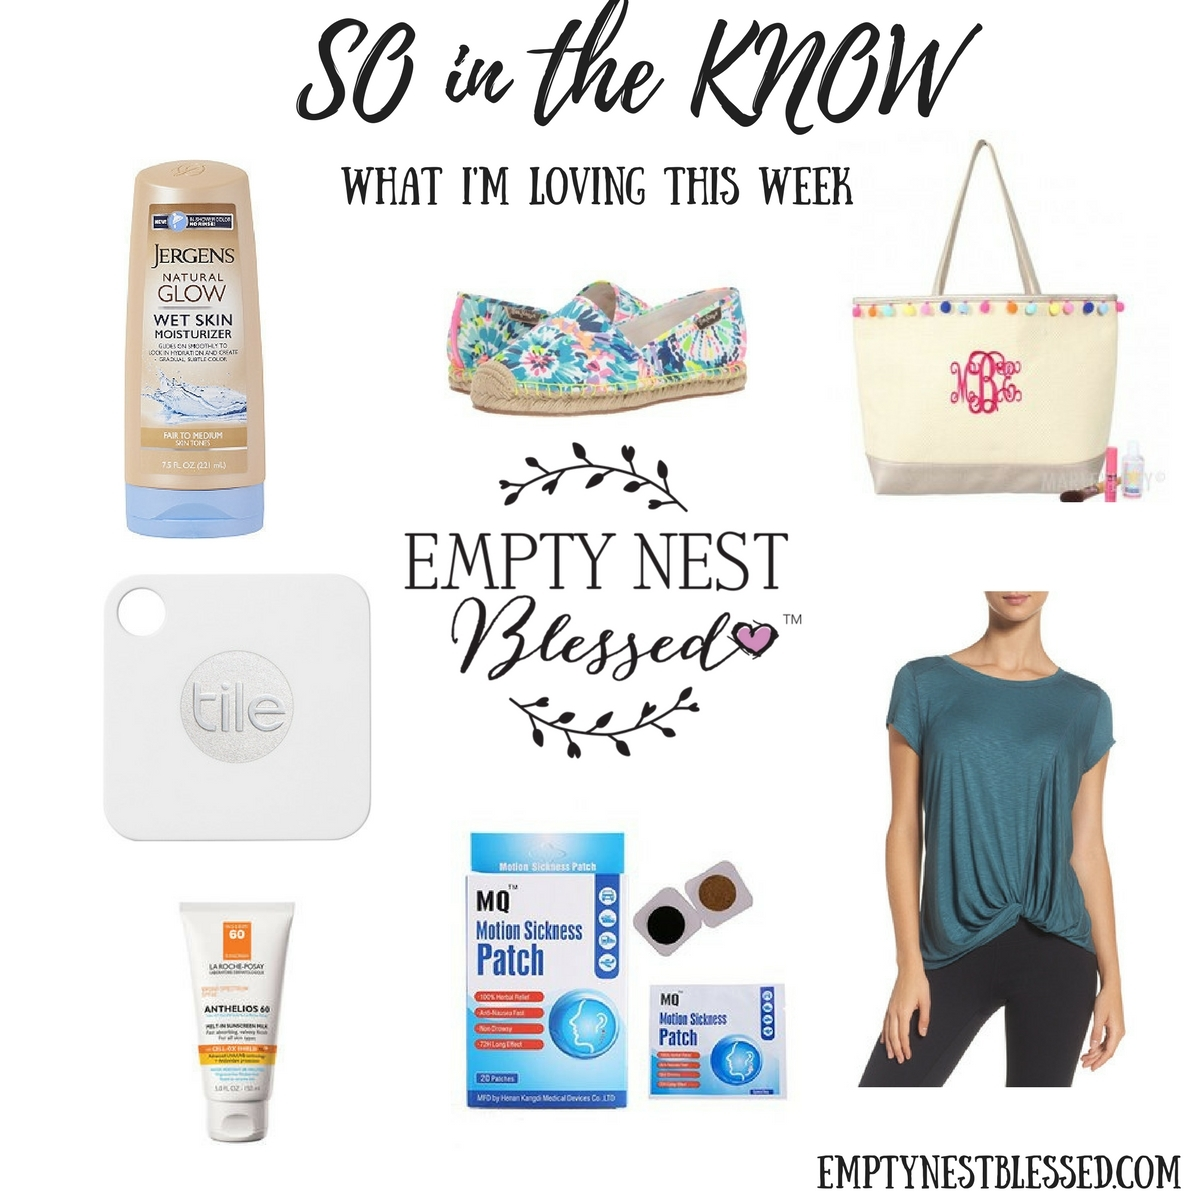 SO in the KNOW   What I'm Learning and Loving This Week (6/30 edition)